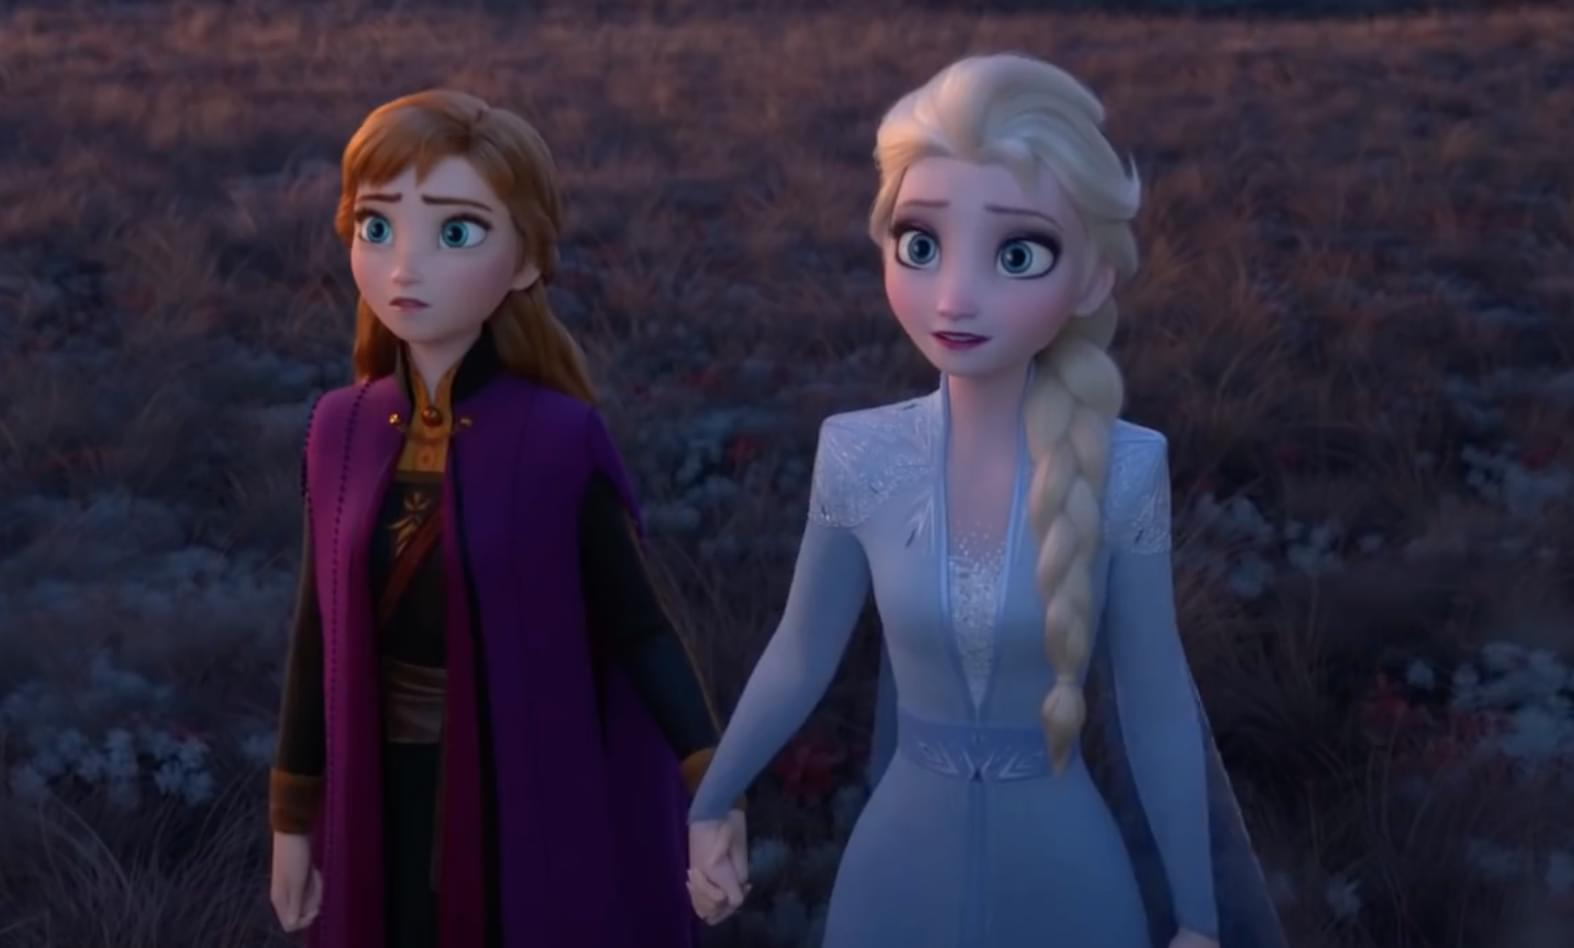 Disney+ added Frozen 2 three months early for kids and parents staying home